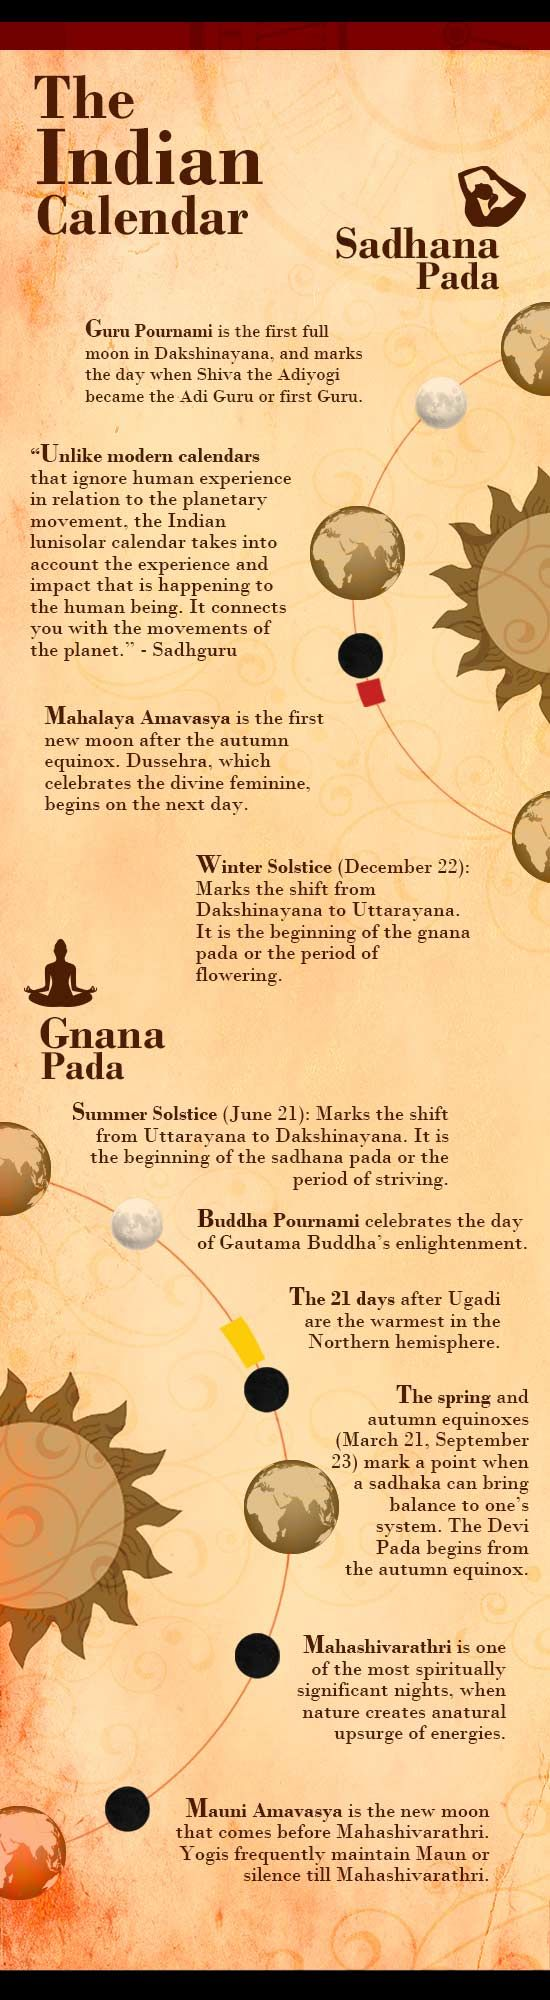 Infographic - The Indian Calendar